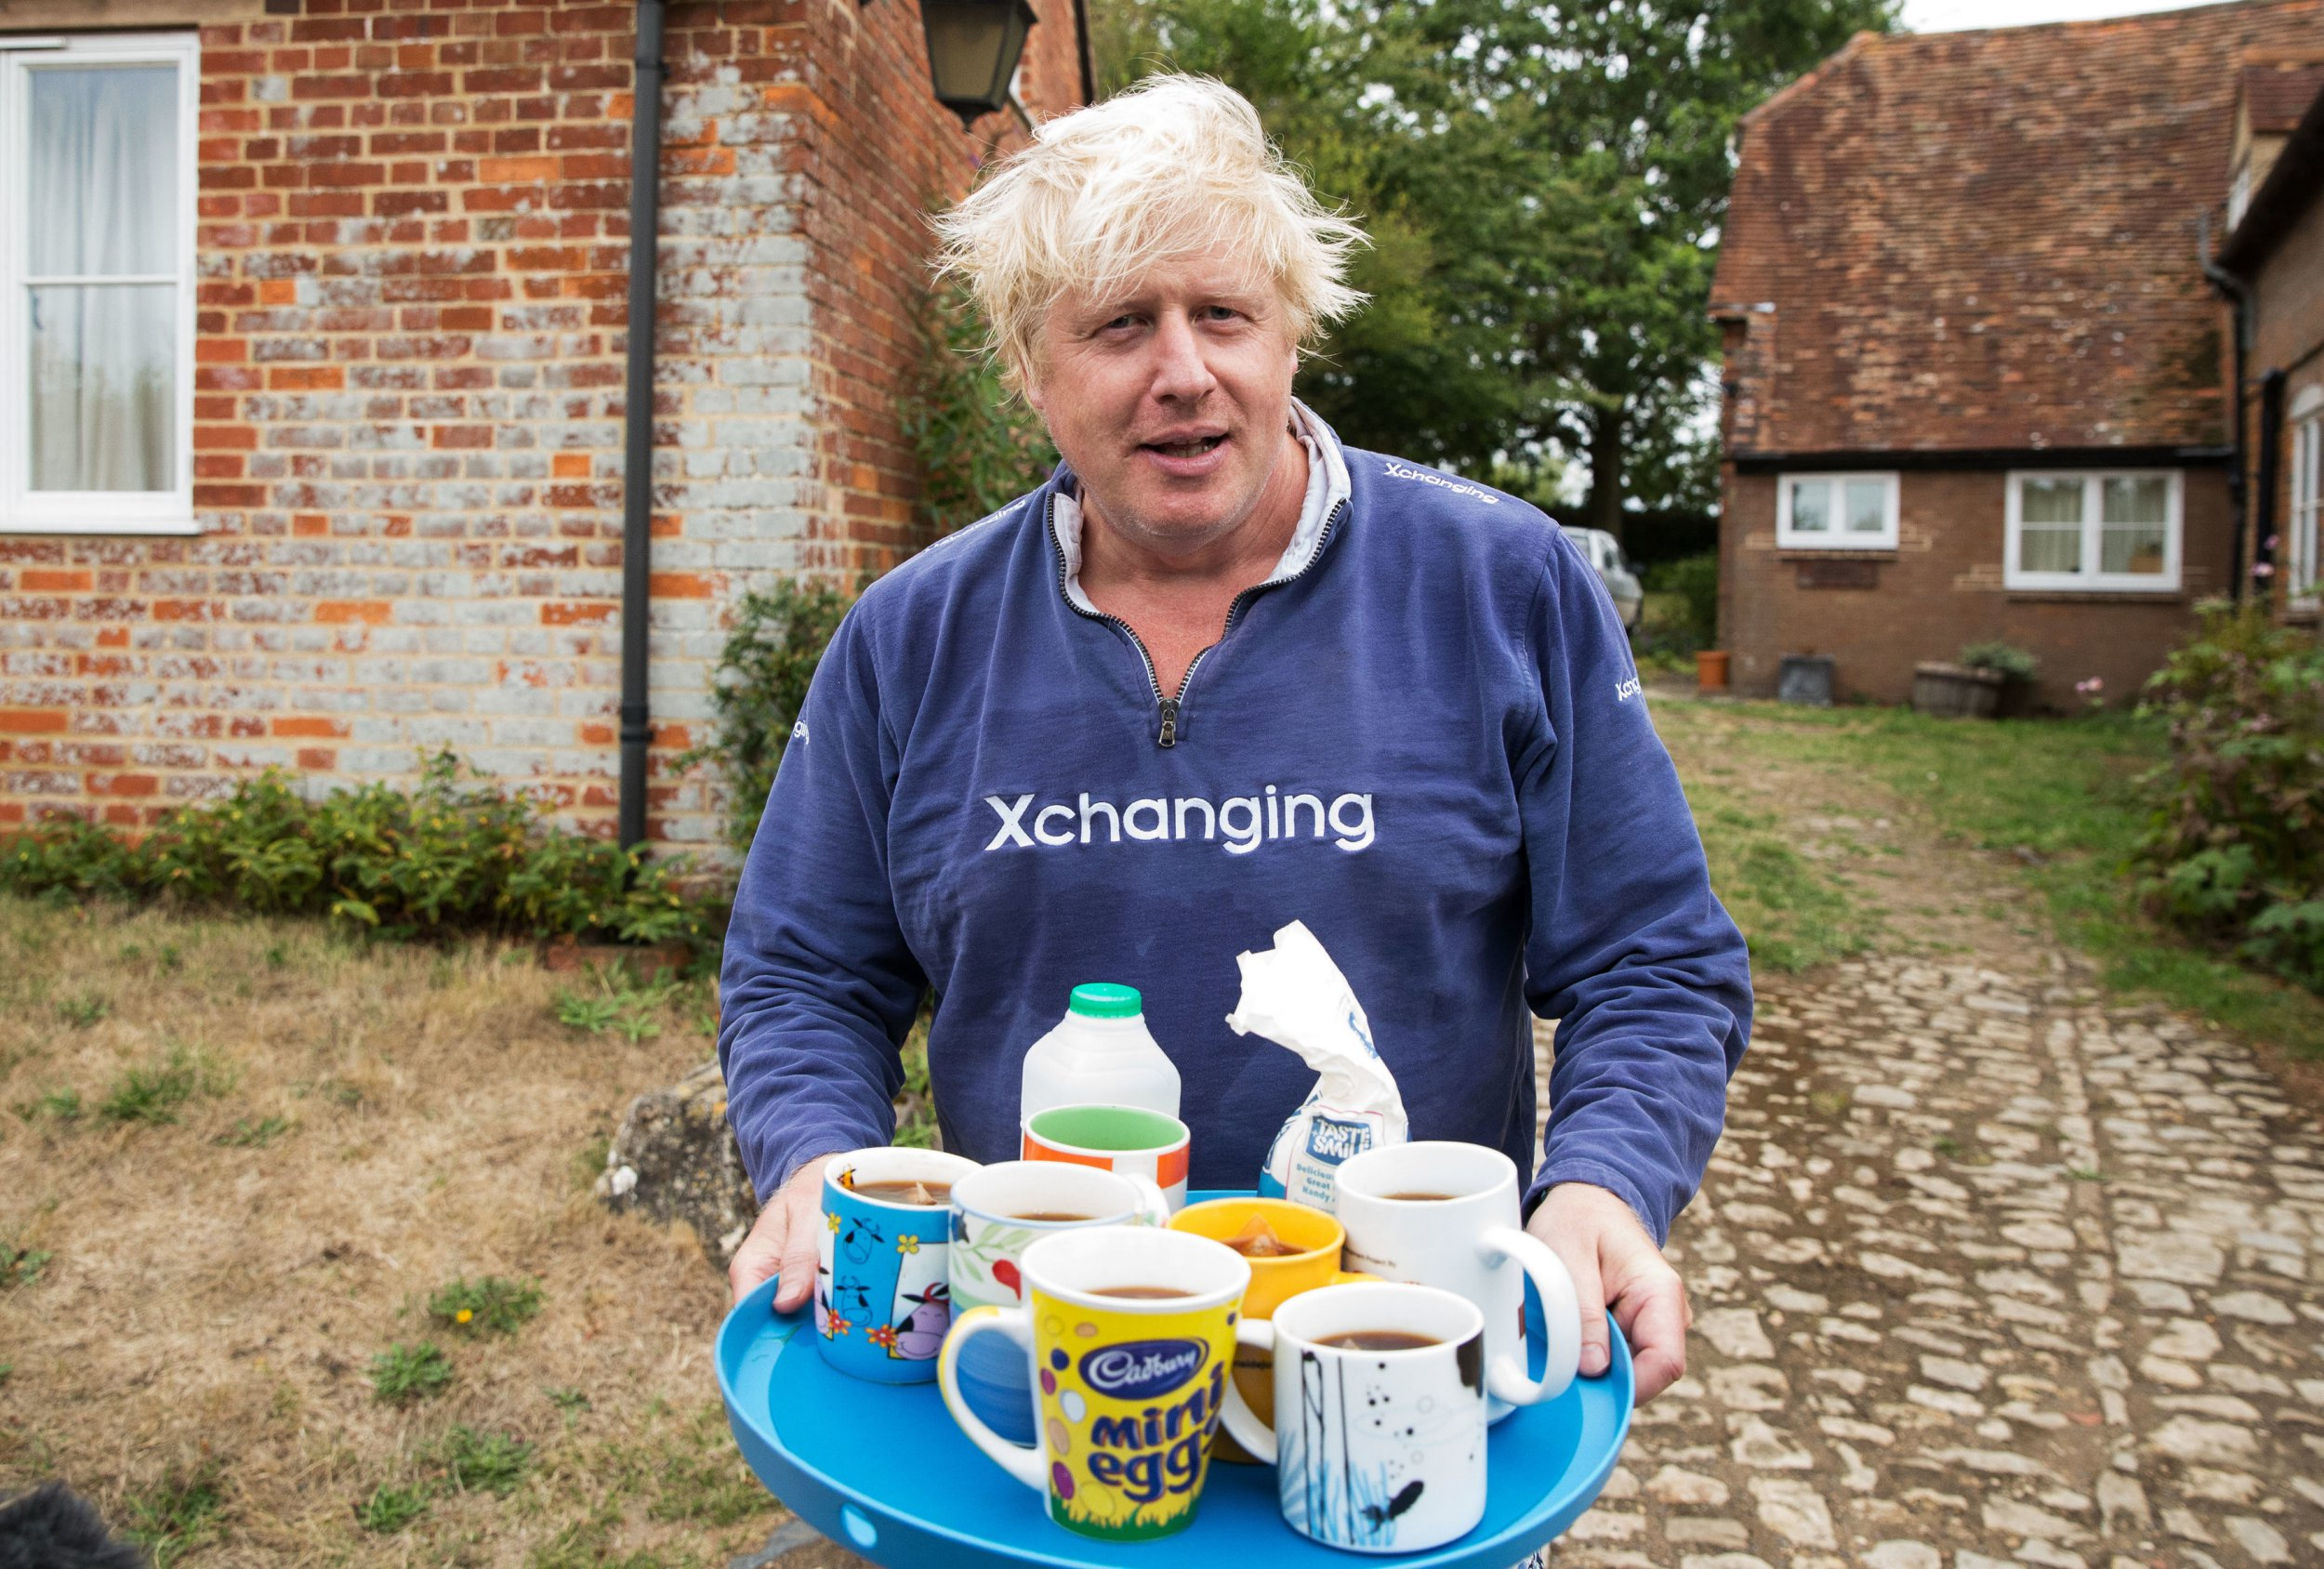 Boris Johnson brings tea for the press to drink outside his house in Thame. PRESS ASSOCIATION Photo. Picture date: Sunday August 12, 2018. See PA story POLITICS Johnson. Photo credit should read: Aaron Chown/PA Wire